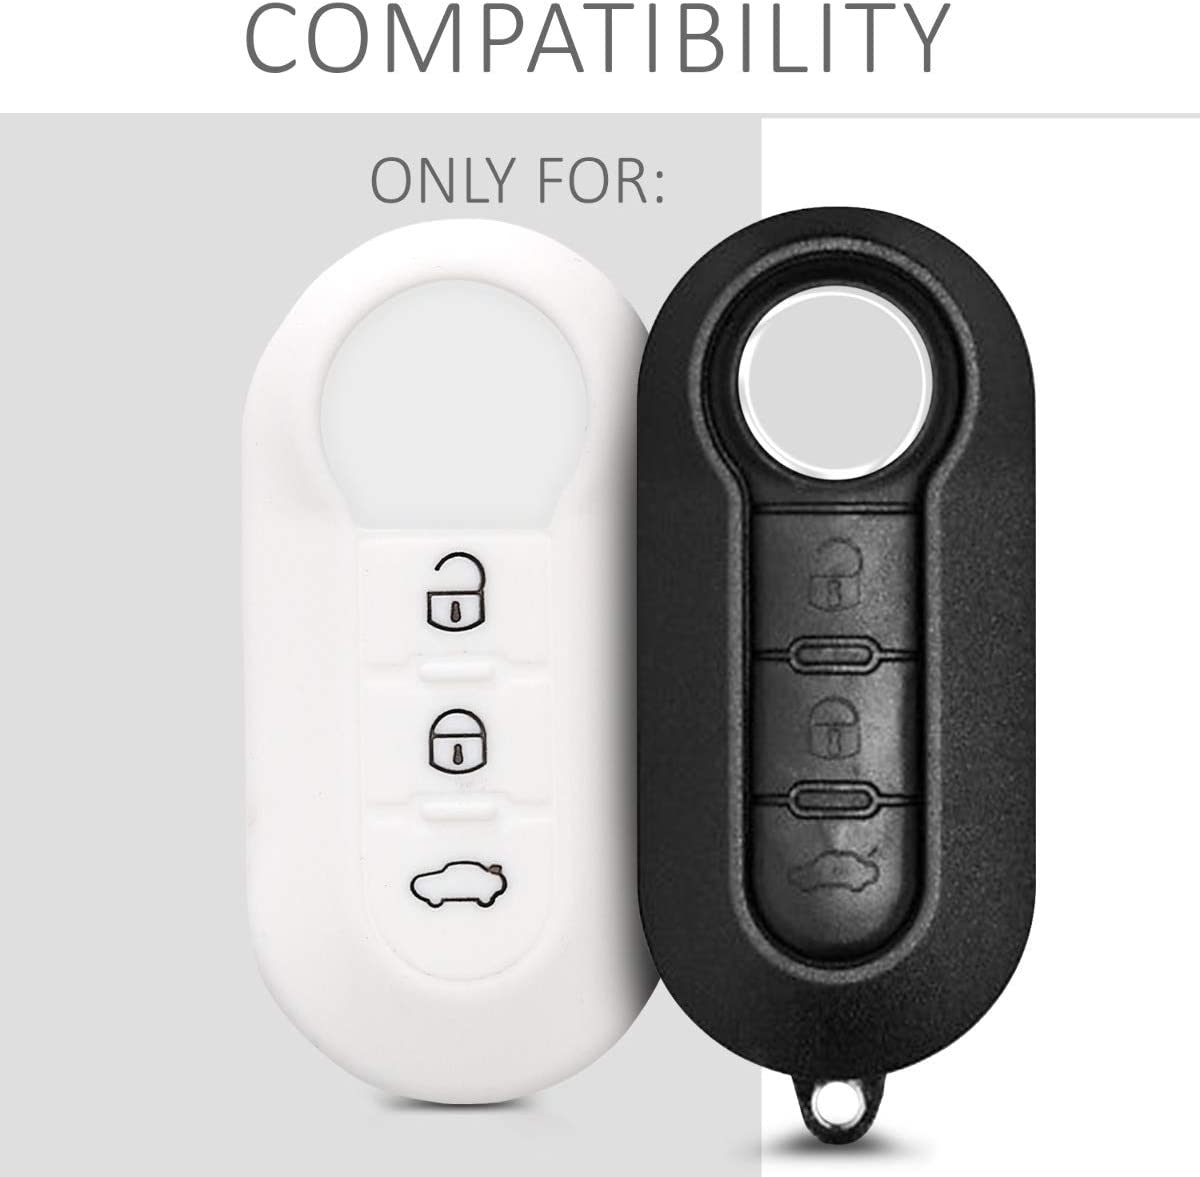 kwmobile Car Key Cover Compatible with Fiat Lancia 3 Button Car Flip Key Silicone Protective Key Fob Cover Rally Stripe Black//White